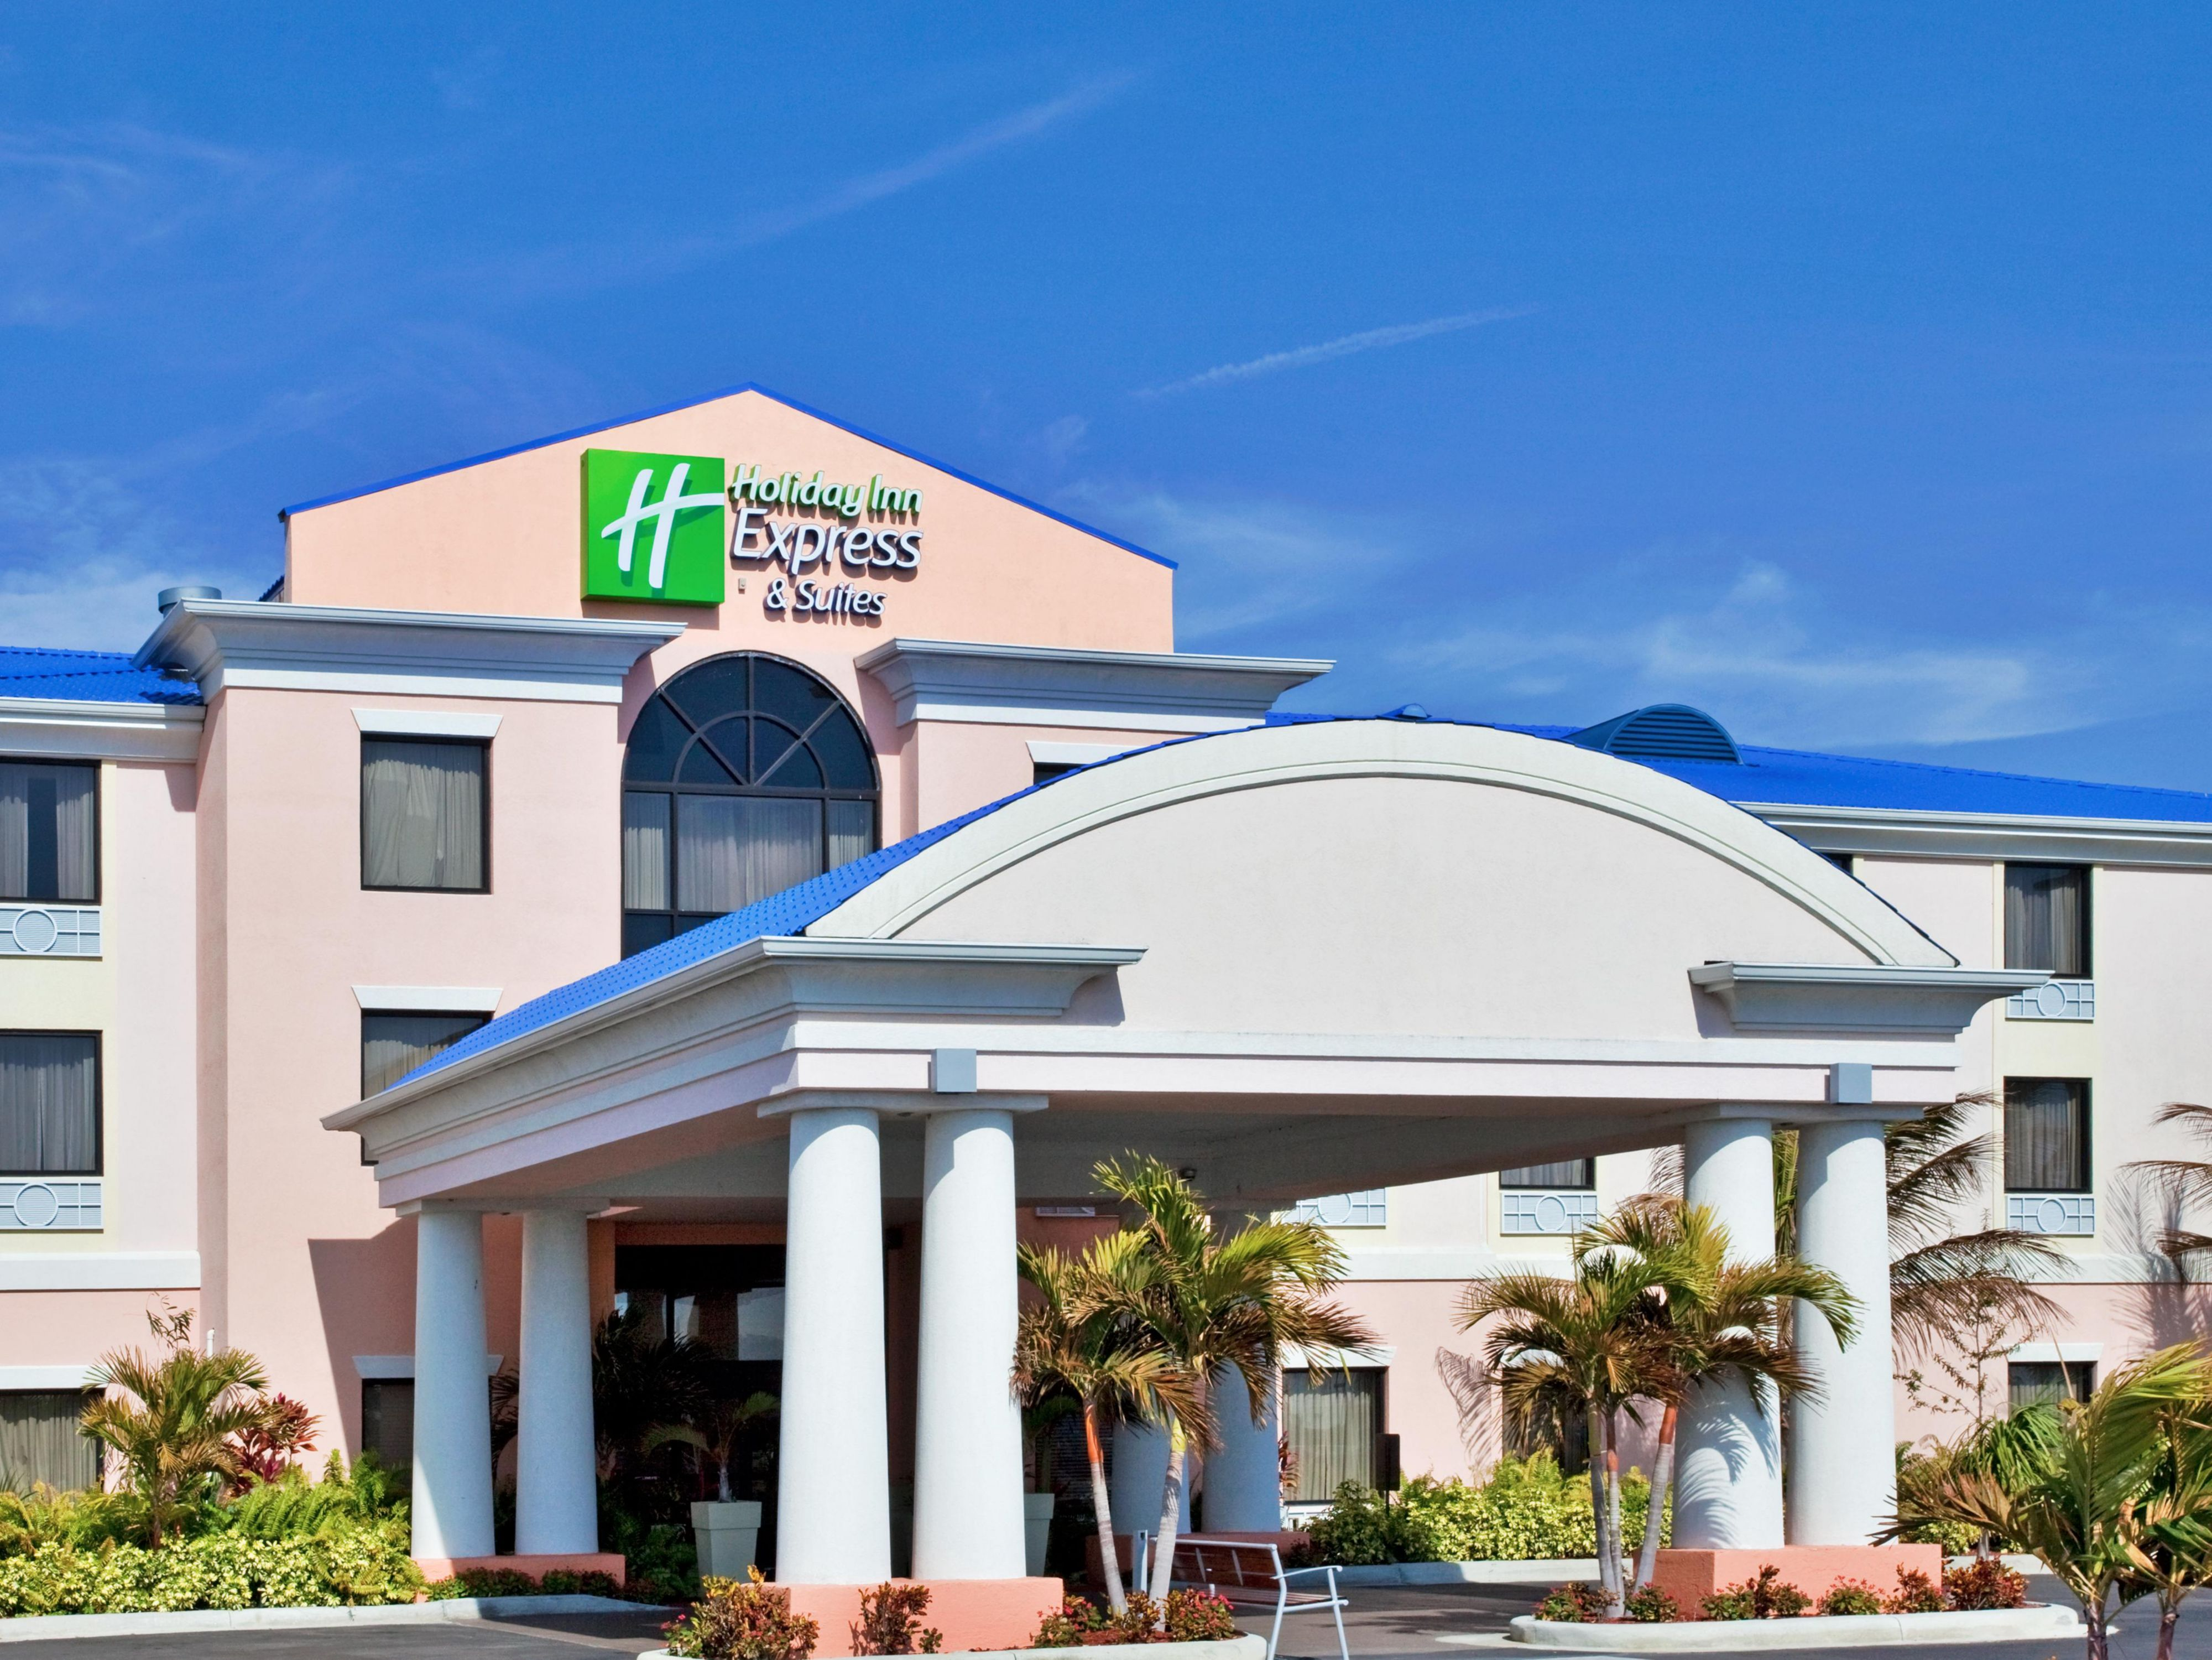 Holiday Inn Express Lake Okeechobee Hotel Exterior Day